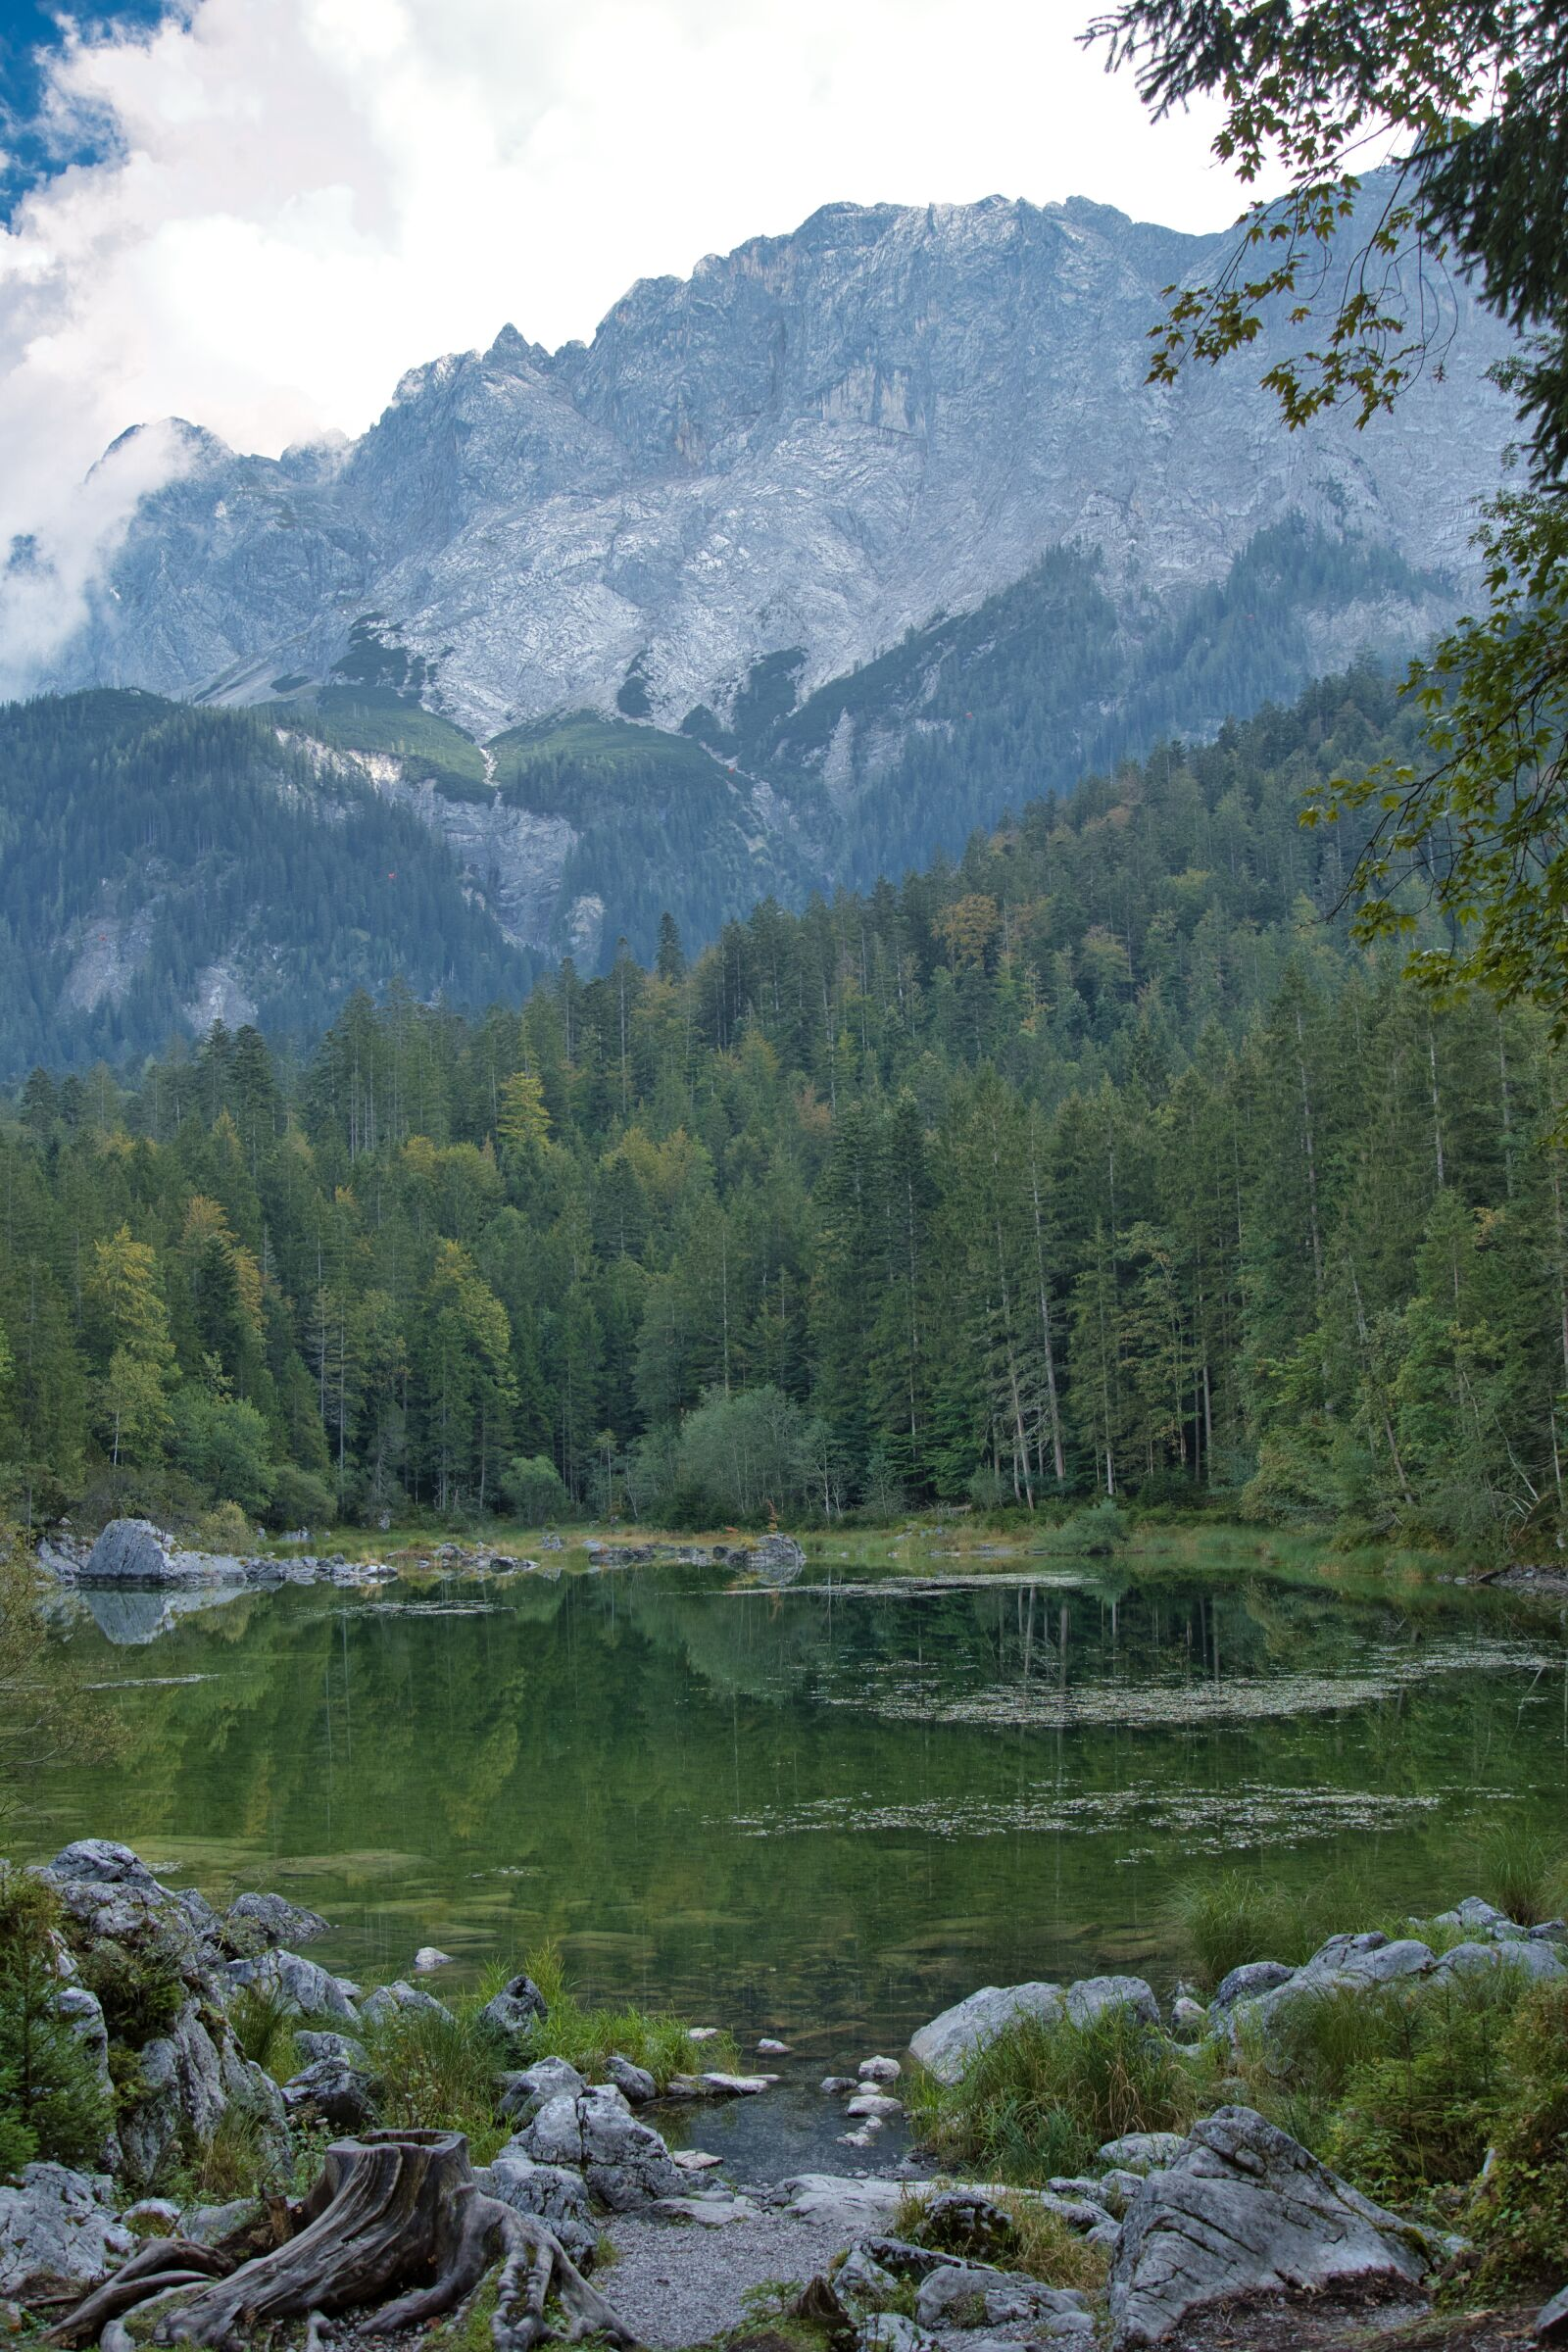 """Sony a6400 sample photo. """"Lake, mountains, nature"""" photography"""